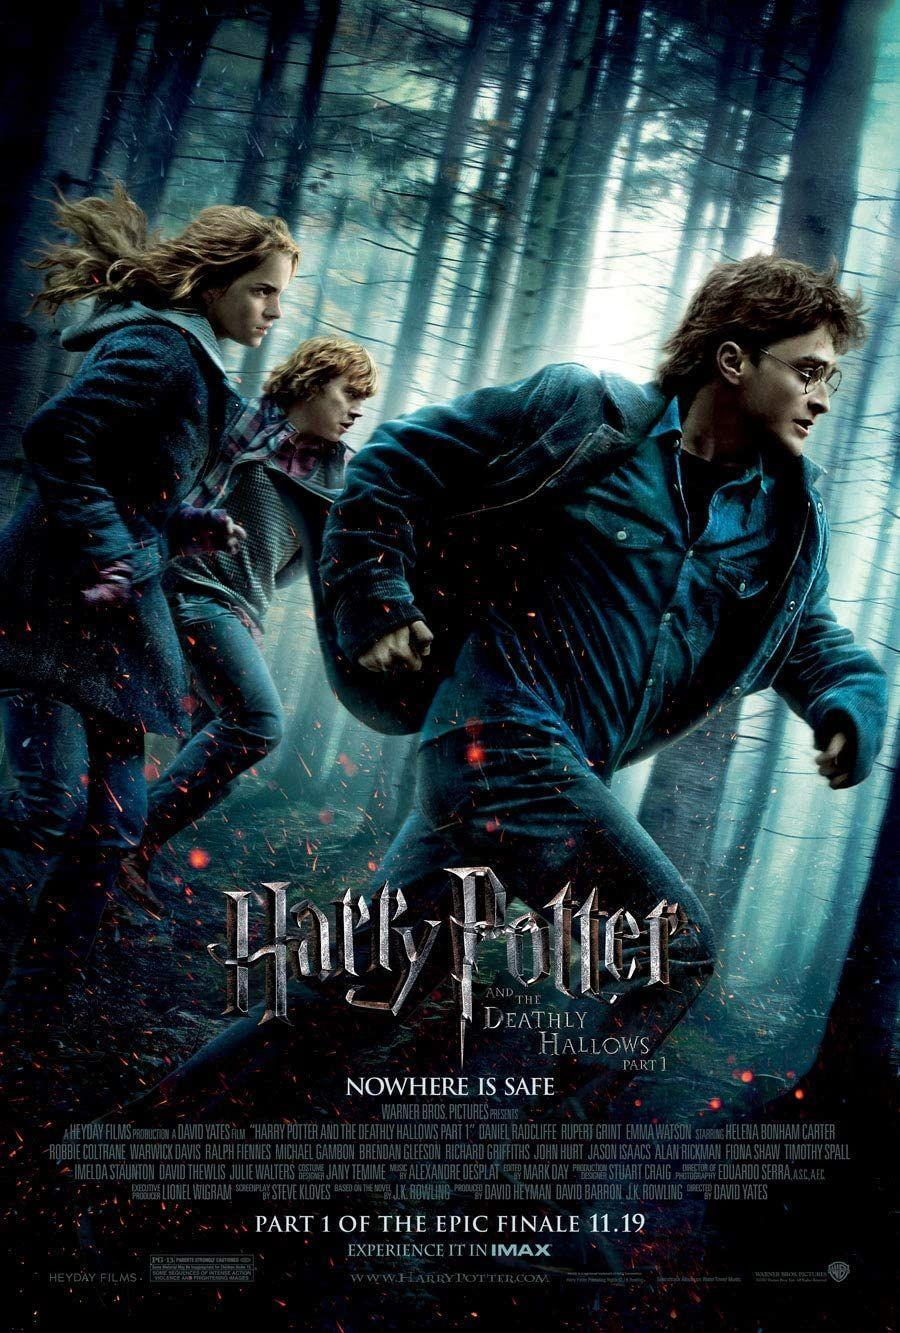 "<p>On the hunt to find the horcruxes before Voldemort finds him, Harry, along with Ron and Hermione, are trying to trace down the pieces that will destroy the Dark Lord. However, the war has begun and nowhere is safe. Voldemort and his Death Eaters have taken over the Ministry and Hogwarts and are terrorizing the Wizarding World on their quest to find Harry.</p><p><a class=""link rapid-noclick-resp"" href=""https://www.amazon.com/gp/video/detail/B00BUCCTK6/ref=atv_dp_b00_det_c_UTPsmN_1_1?tag=syn-yahoo-20&ascsubtag=%5Bartid%7C10055.g.33625559%5Bsrc%7Cyahoo-us"" rel=""nofollow noopener"" target=""_blank"" data-ylk=""slk:WATCH NOW"">WATCH NOW</a></p>"